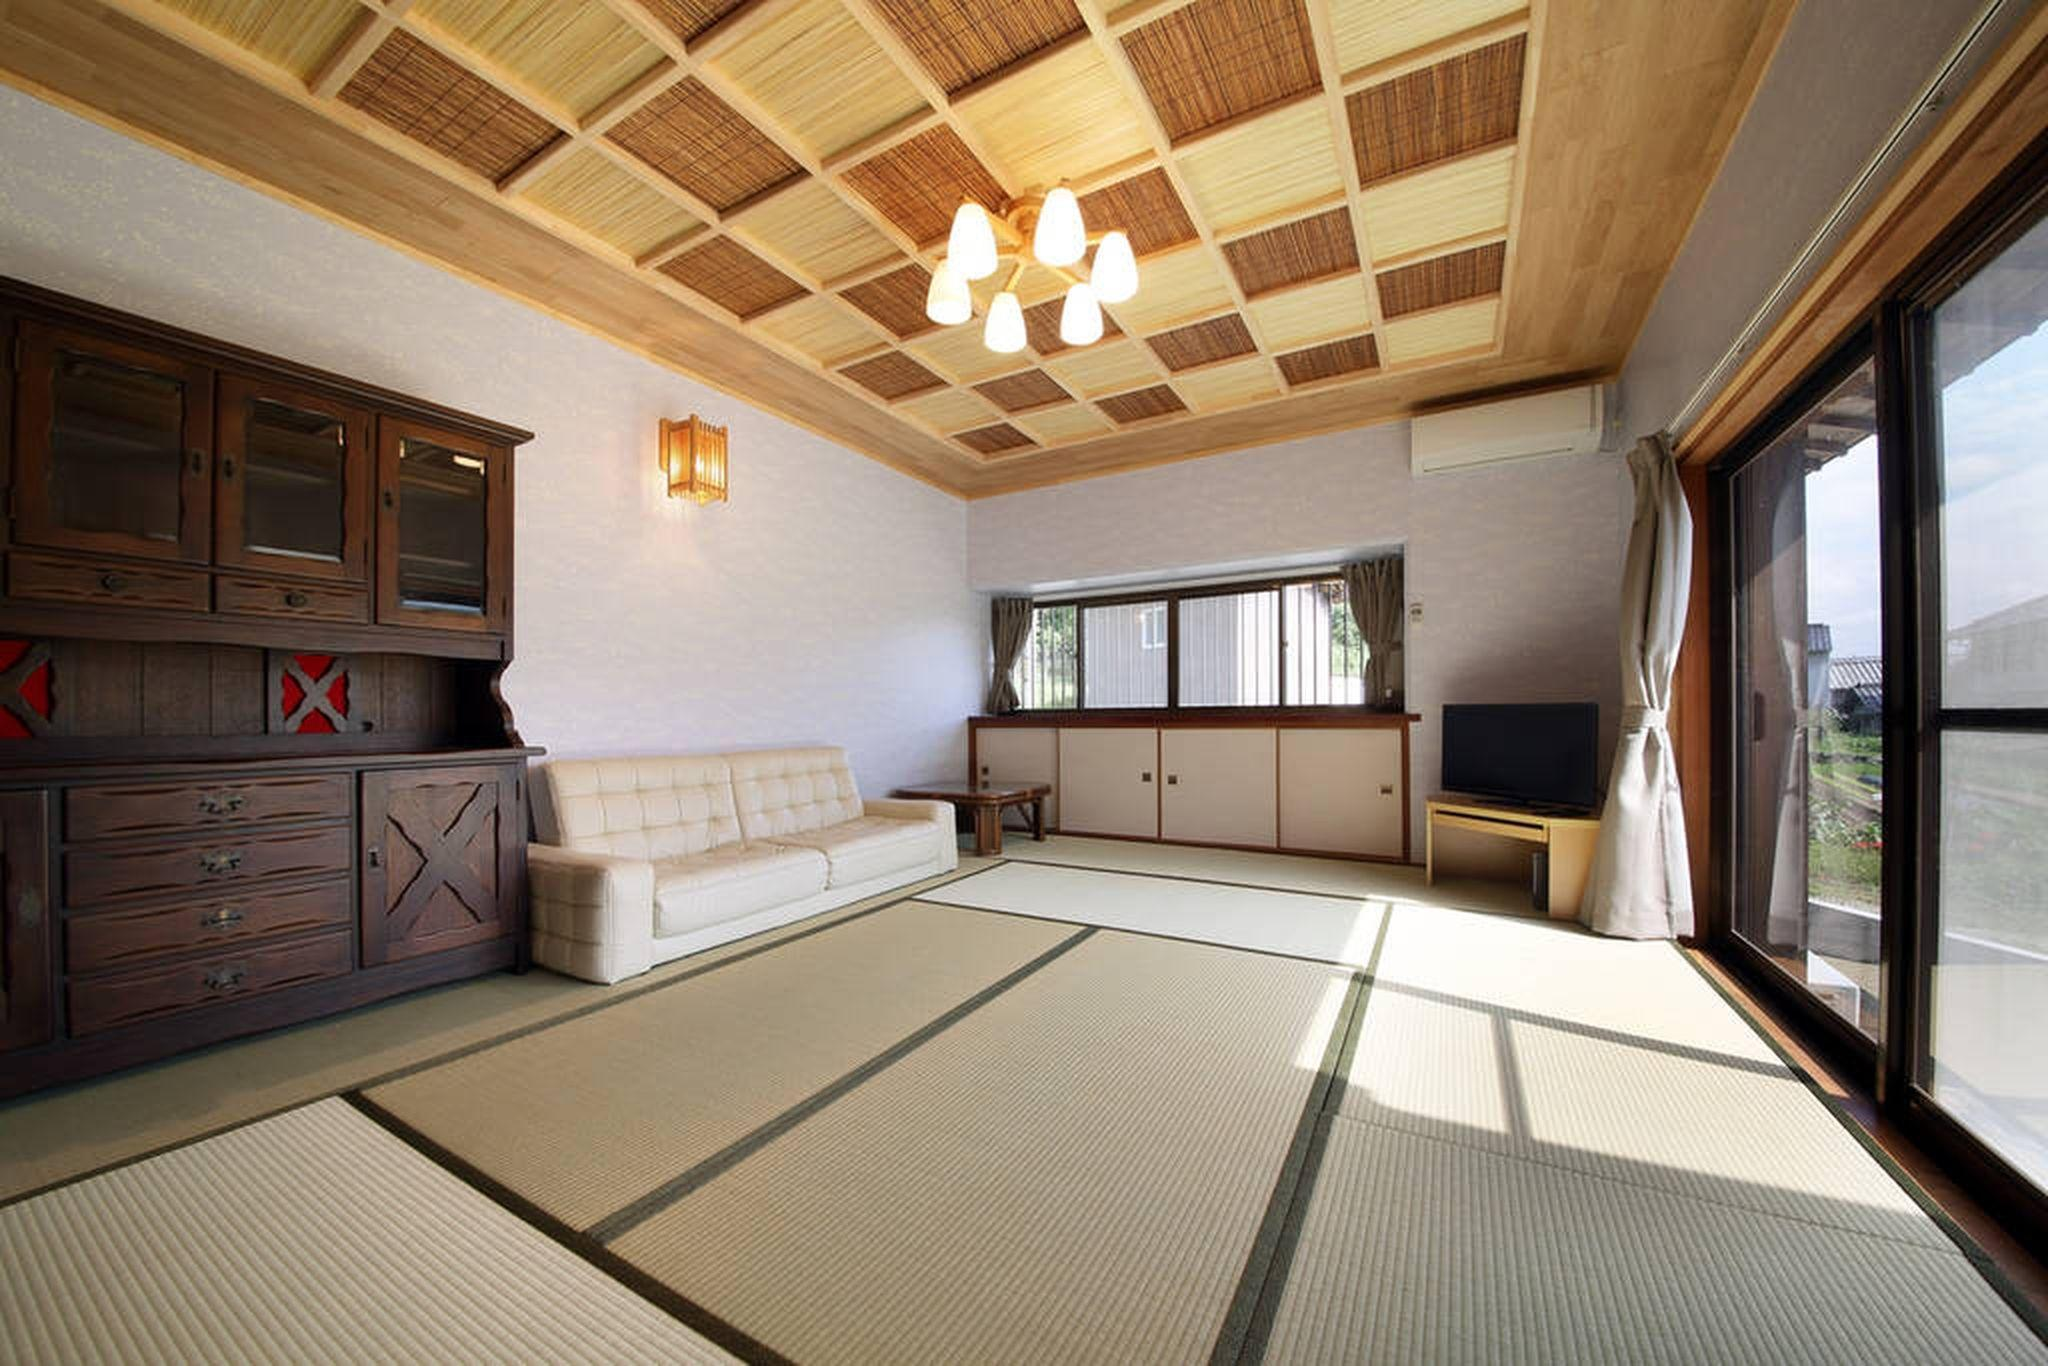 EX House In Hyogo